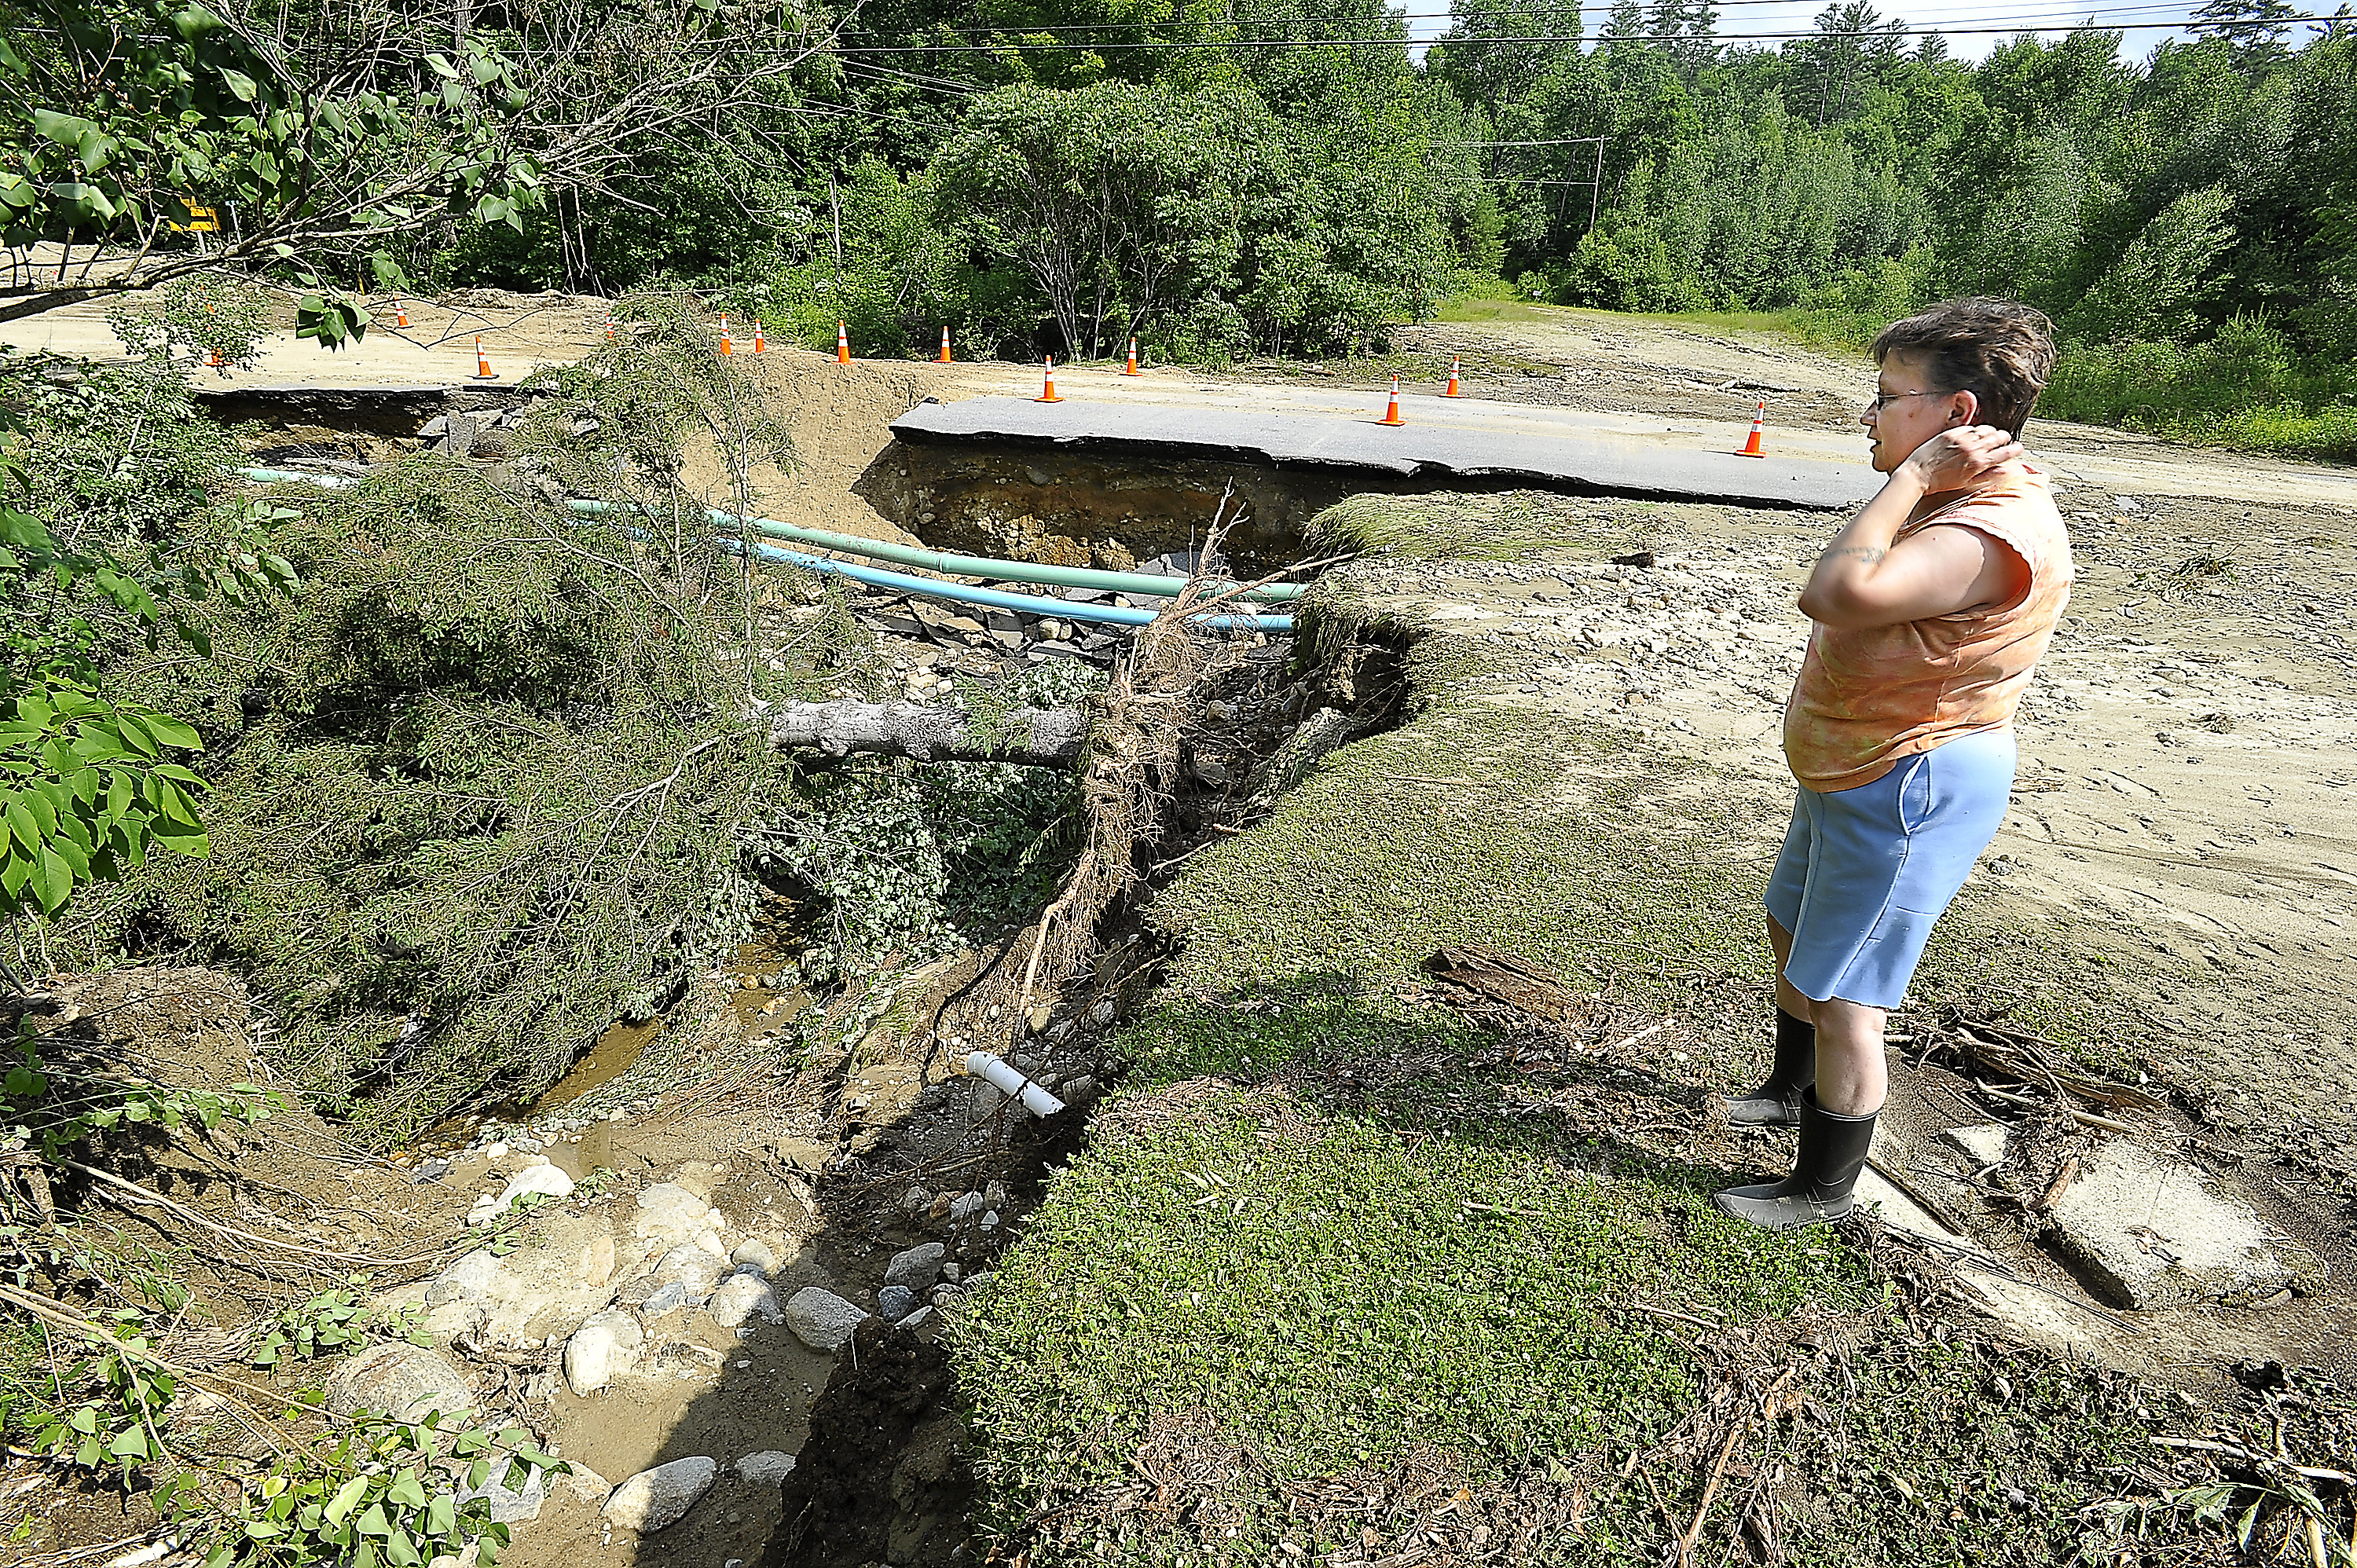 Stephenie Ackerman of South Rumford Road in Rumford checks out the damage to her yard after heavy storms passed through Wednesday night.